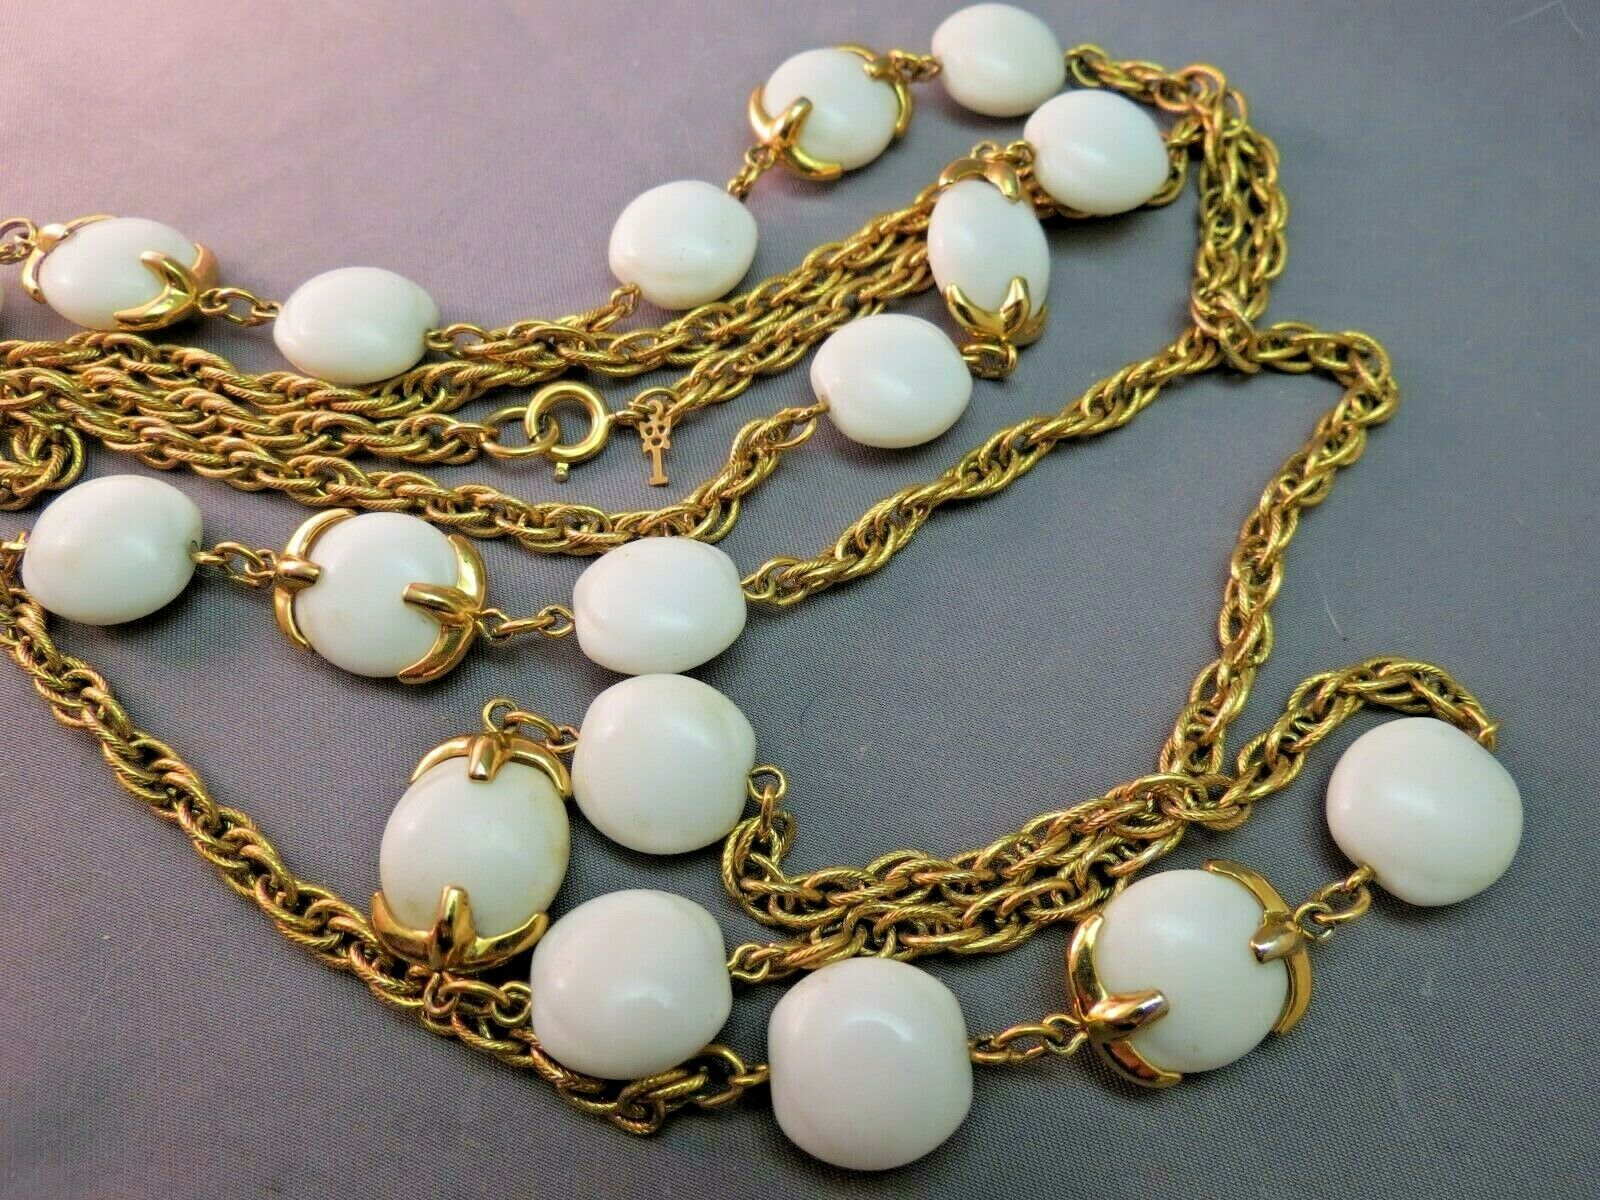 """VTG Crown Trifari Long Necklace Chain Gold Plated Glass Beads Couture 54"""" Long"""